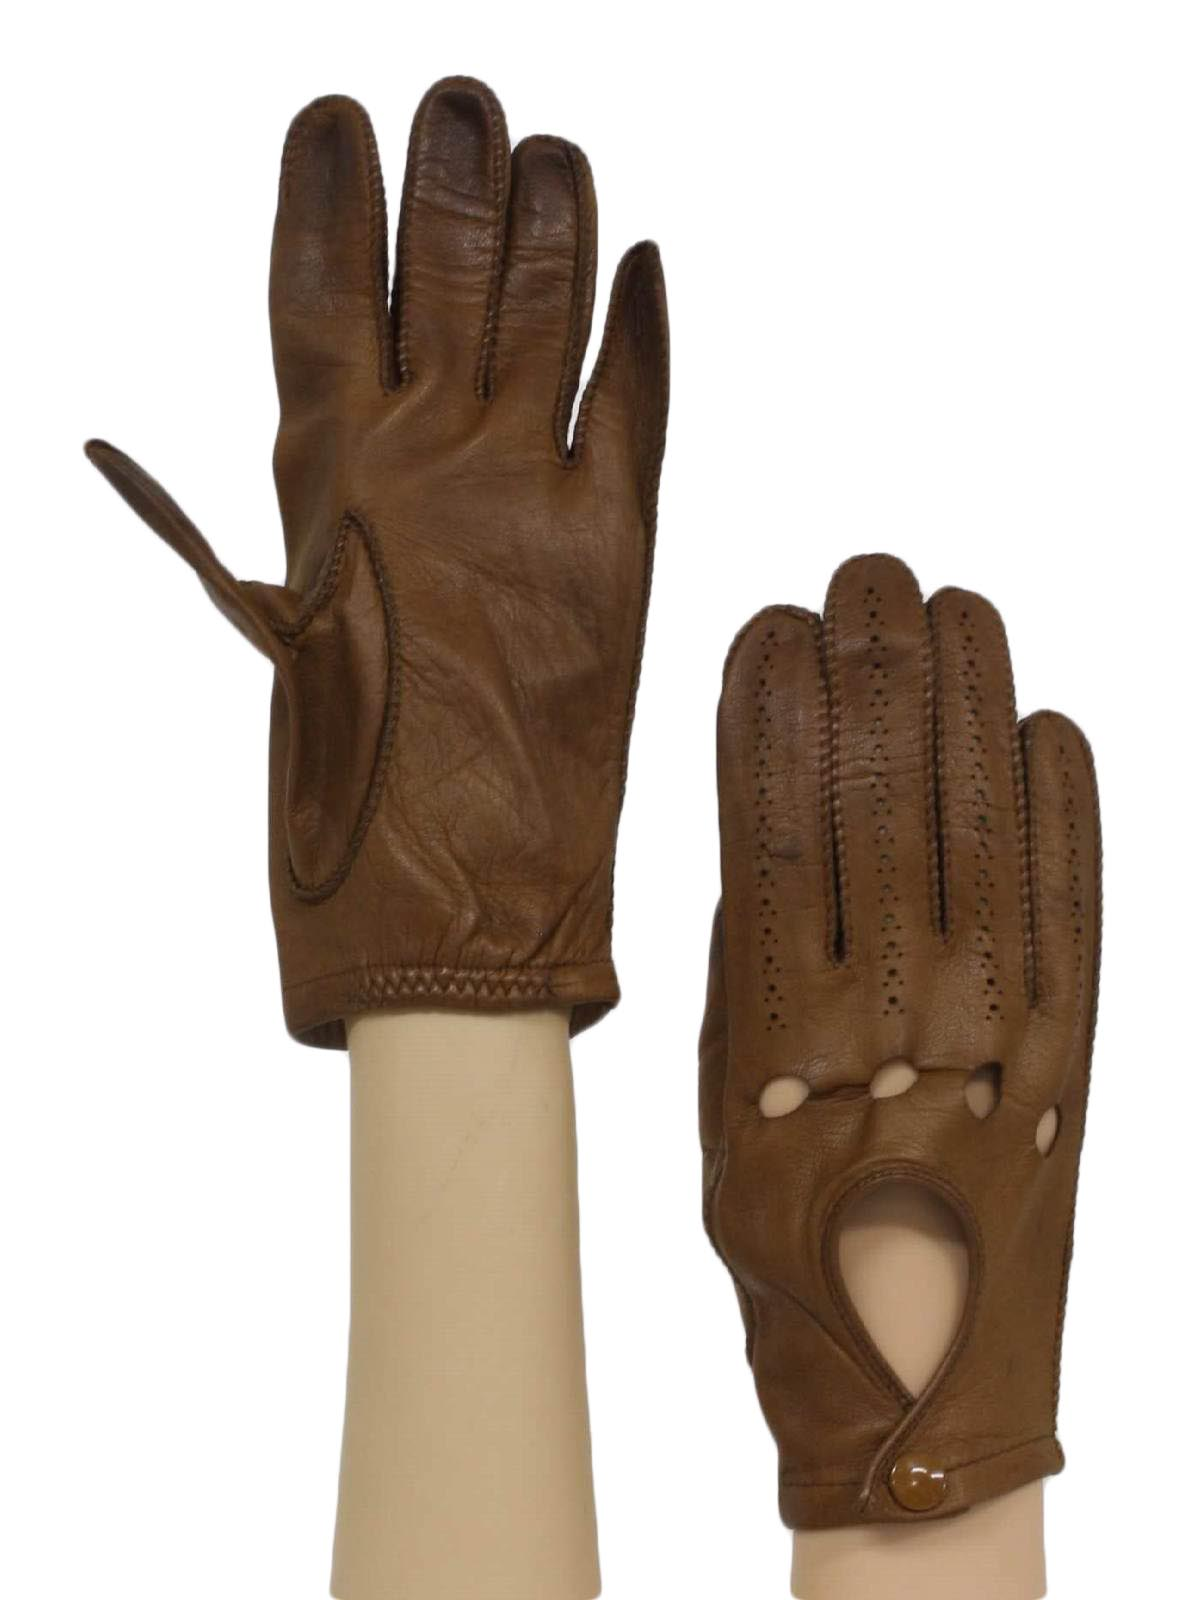 Vintage mens leather gloves - 1970 S Vintage Gloves 70s No Label Mens Soft Smooth Brown Leather Driving Gloves With Ventilated Fingers And Knuckles Solid Palm